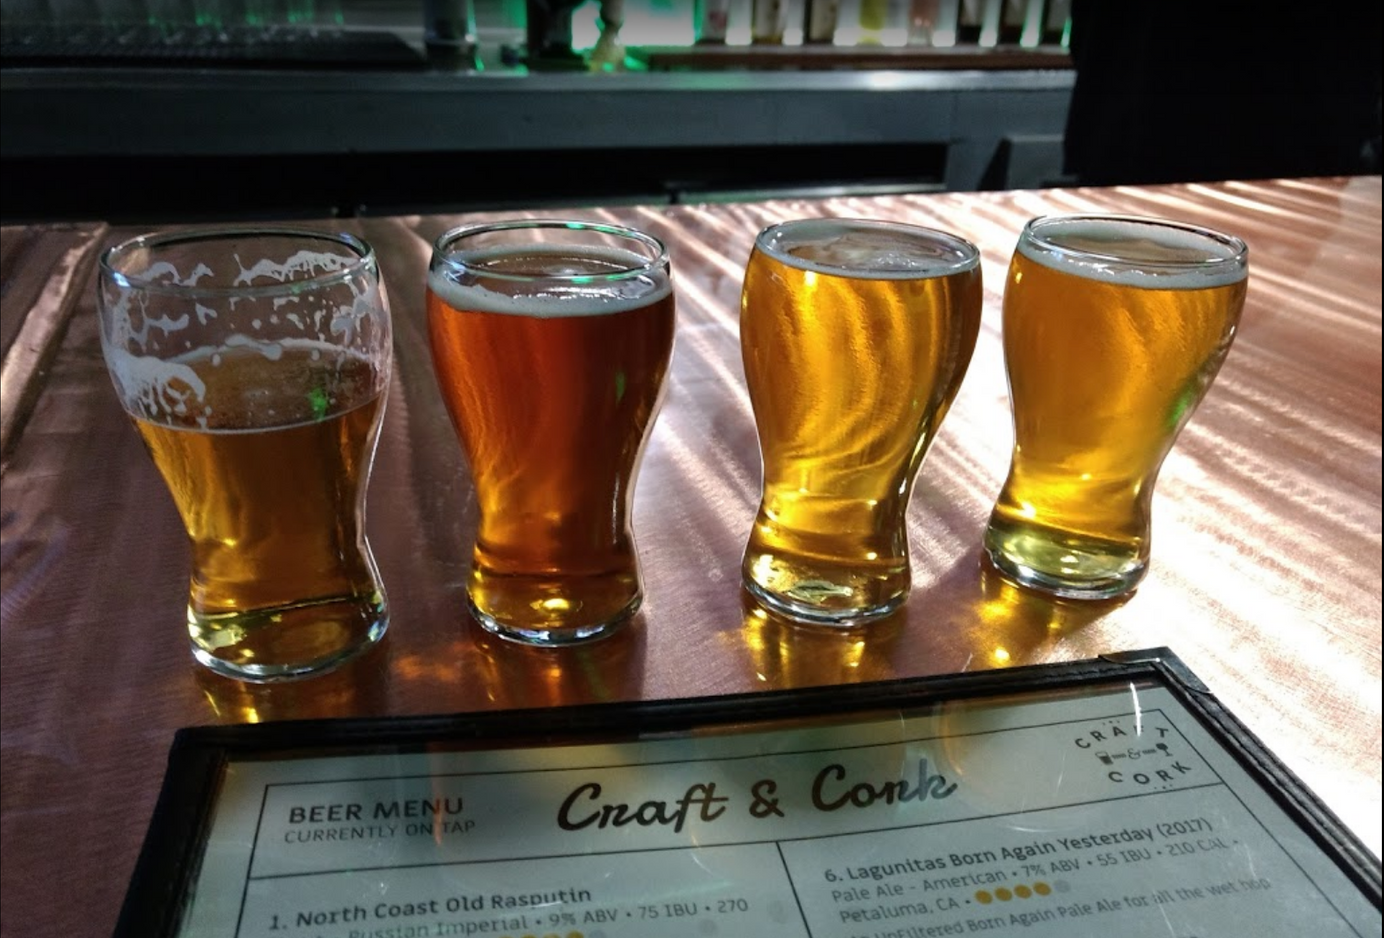 Beer tasting flight